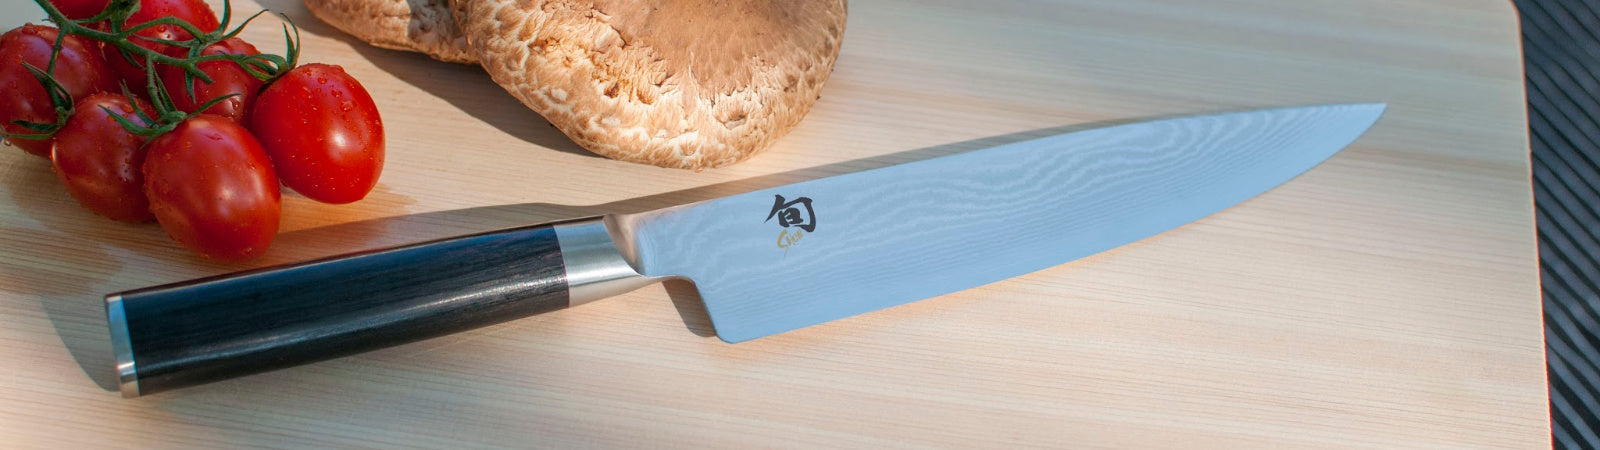 Shun fine Japanese cutlery available at Sportique.com